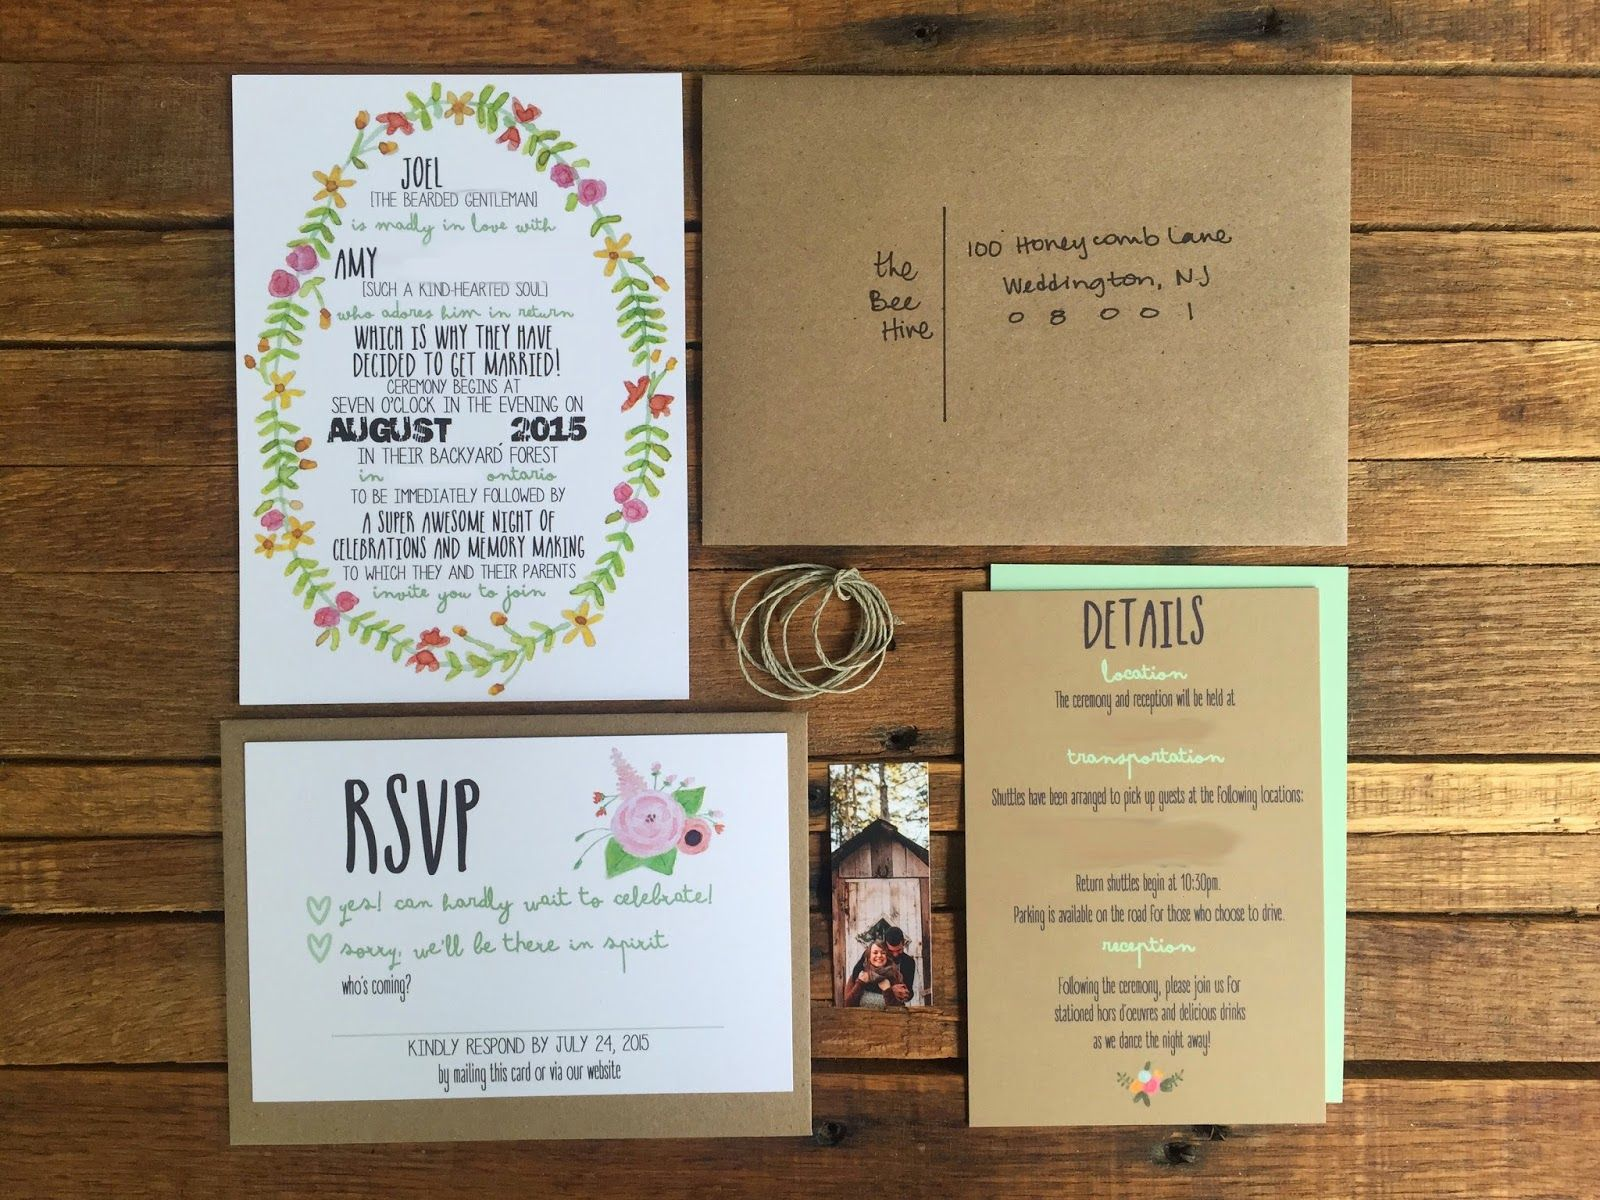 Create Own Vistaprint Wedding Invitations Printable More Http Www S Printing Wedding Invitations Vista Print Wedding Invitations Creative Wedding Invitations